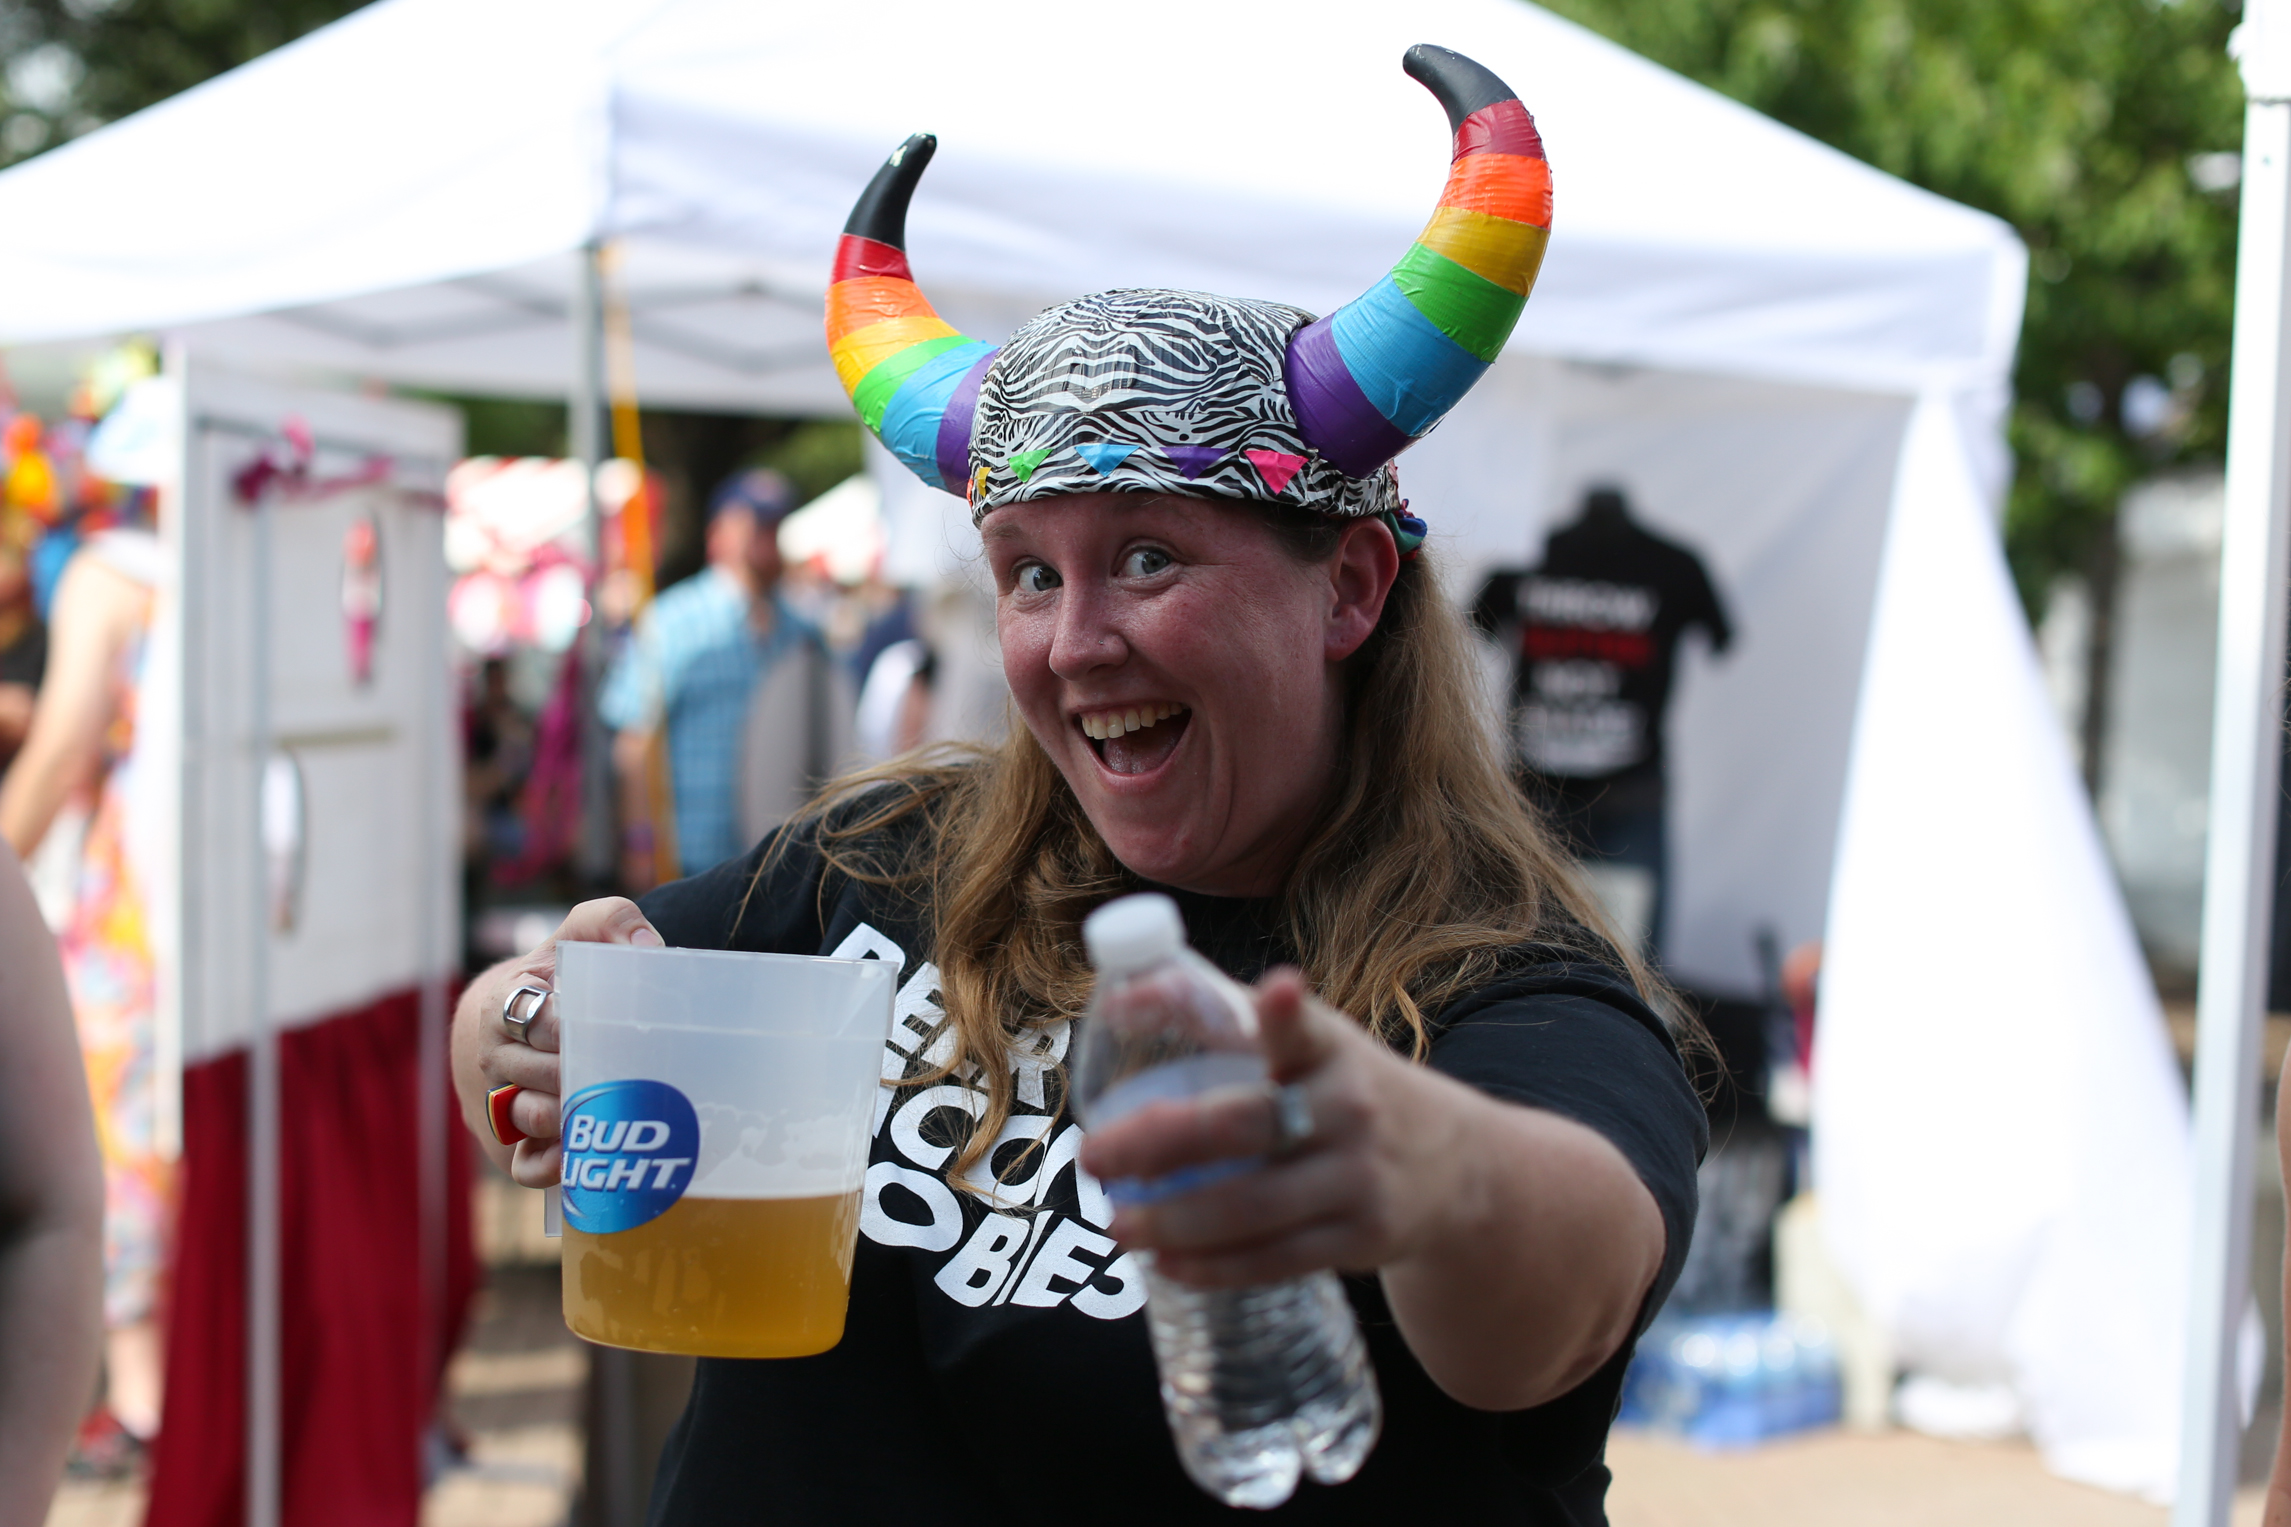 PRIDE W-FEVA 2015 EDITED CRYSTAL LUDWICK PHOTO (76 of 83).jpg